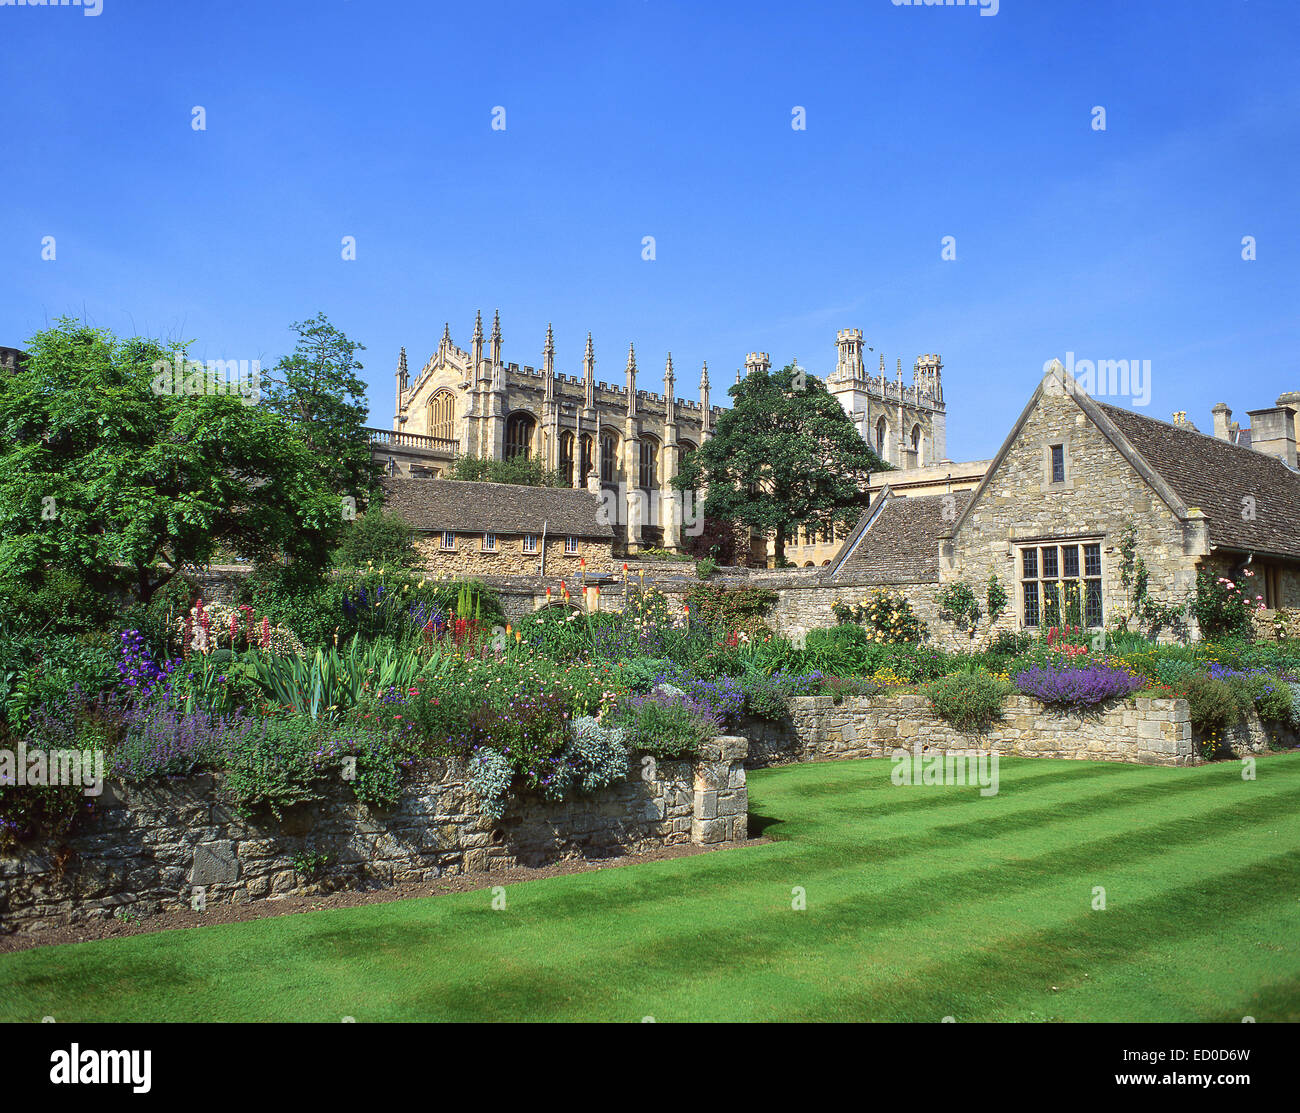 Christ Church College from War Memorial Gardens, Oxford, Oxfordshire, England, United Kingdom - Stock Image